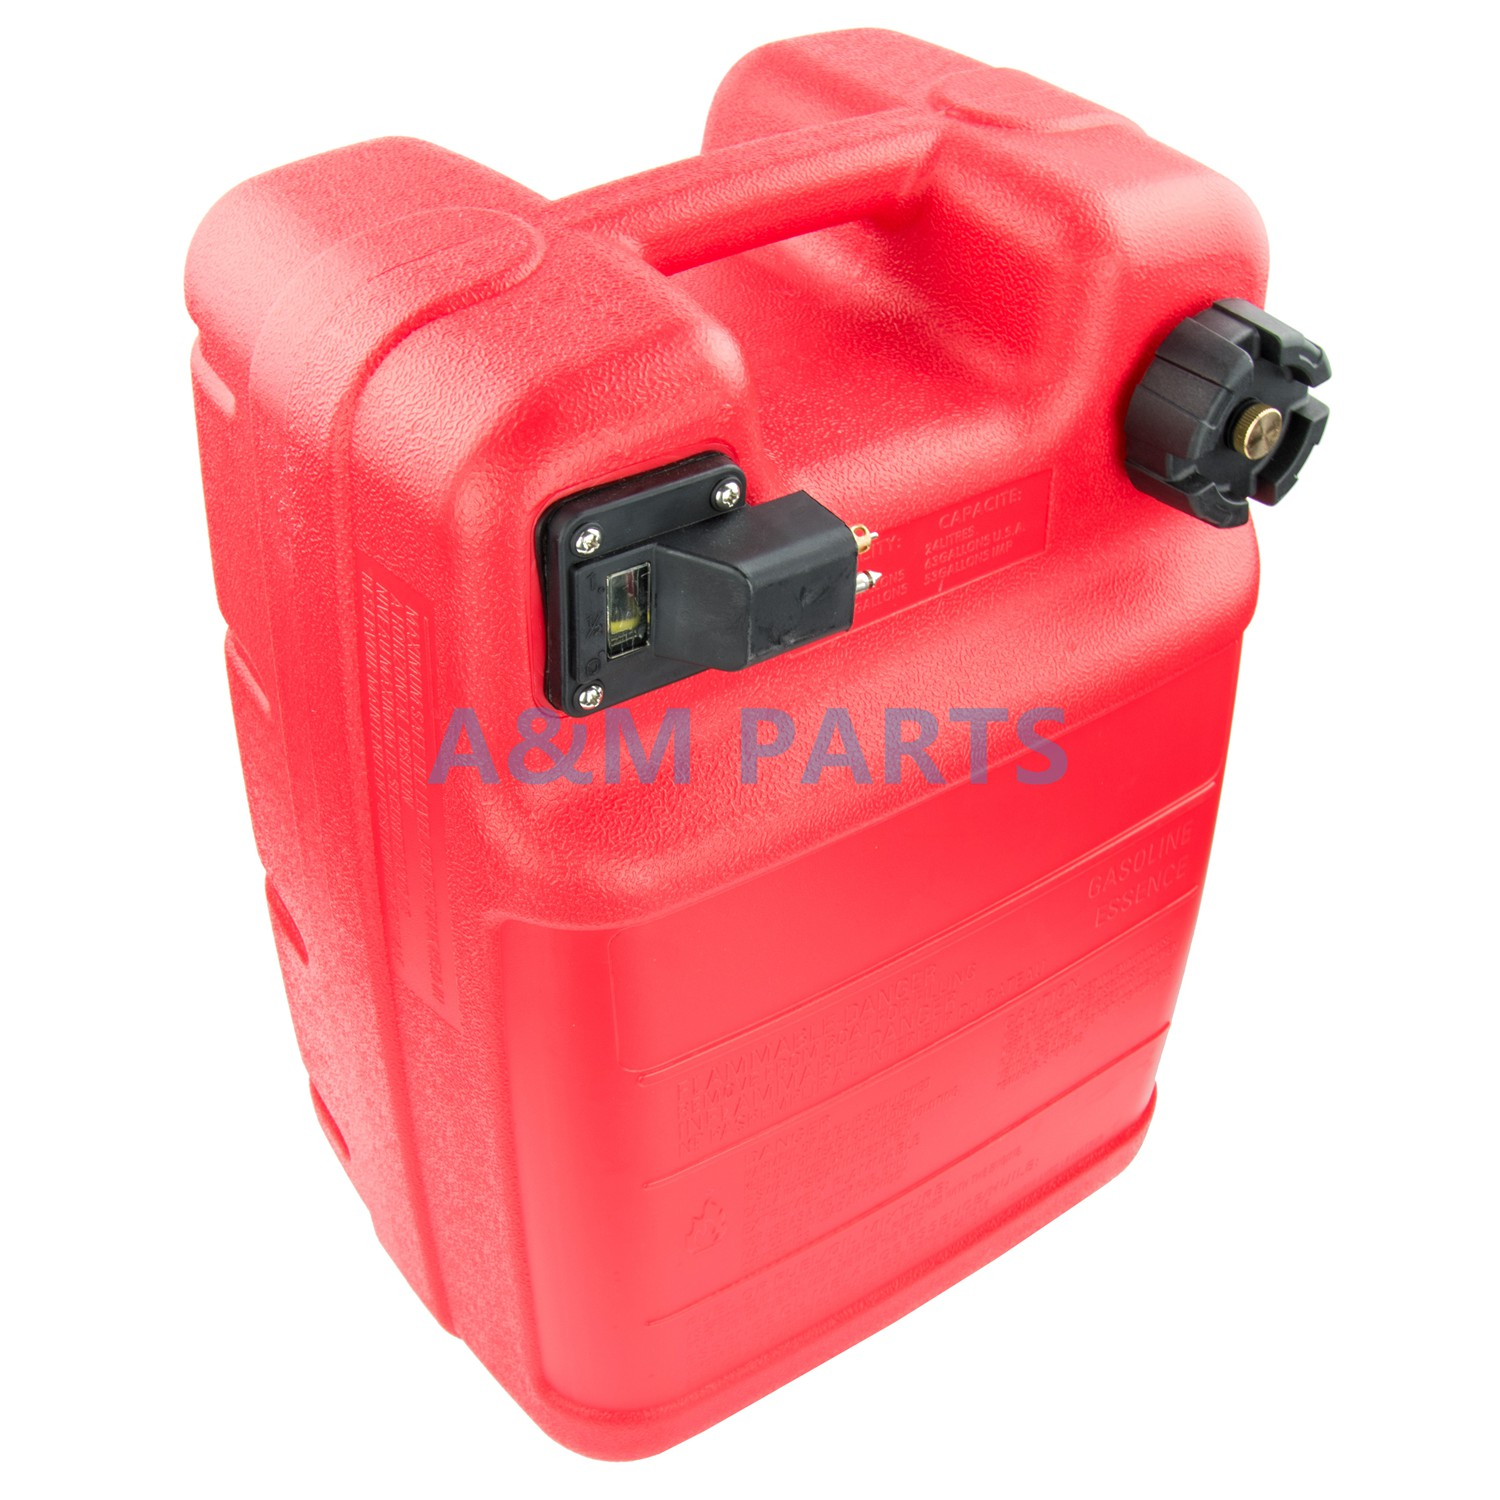 Portable Boat Engine Fuel Tank 24L Marine Outboard Fuel Tank With Connector boat motor 24l fuel tank assembly for yamaha outboard engine with fuel cap and fuel gauge